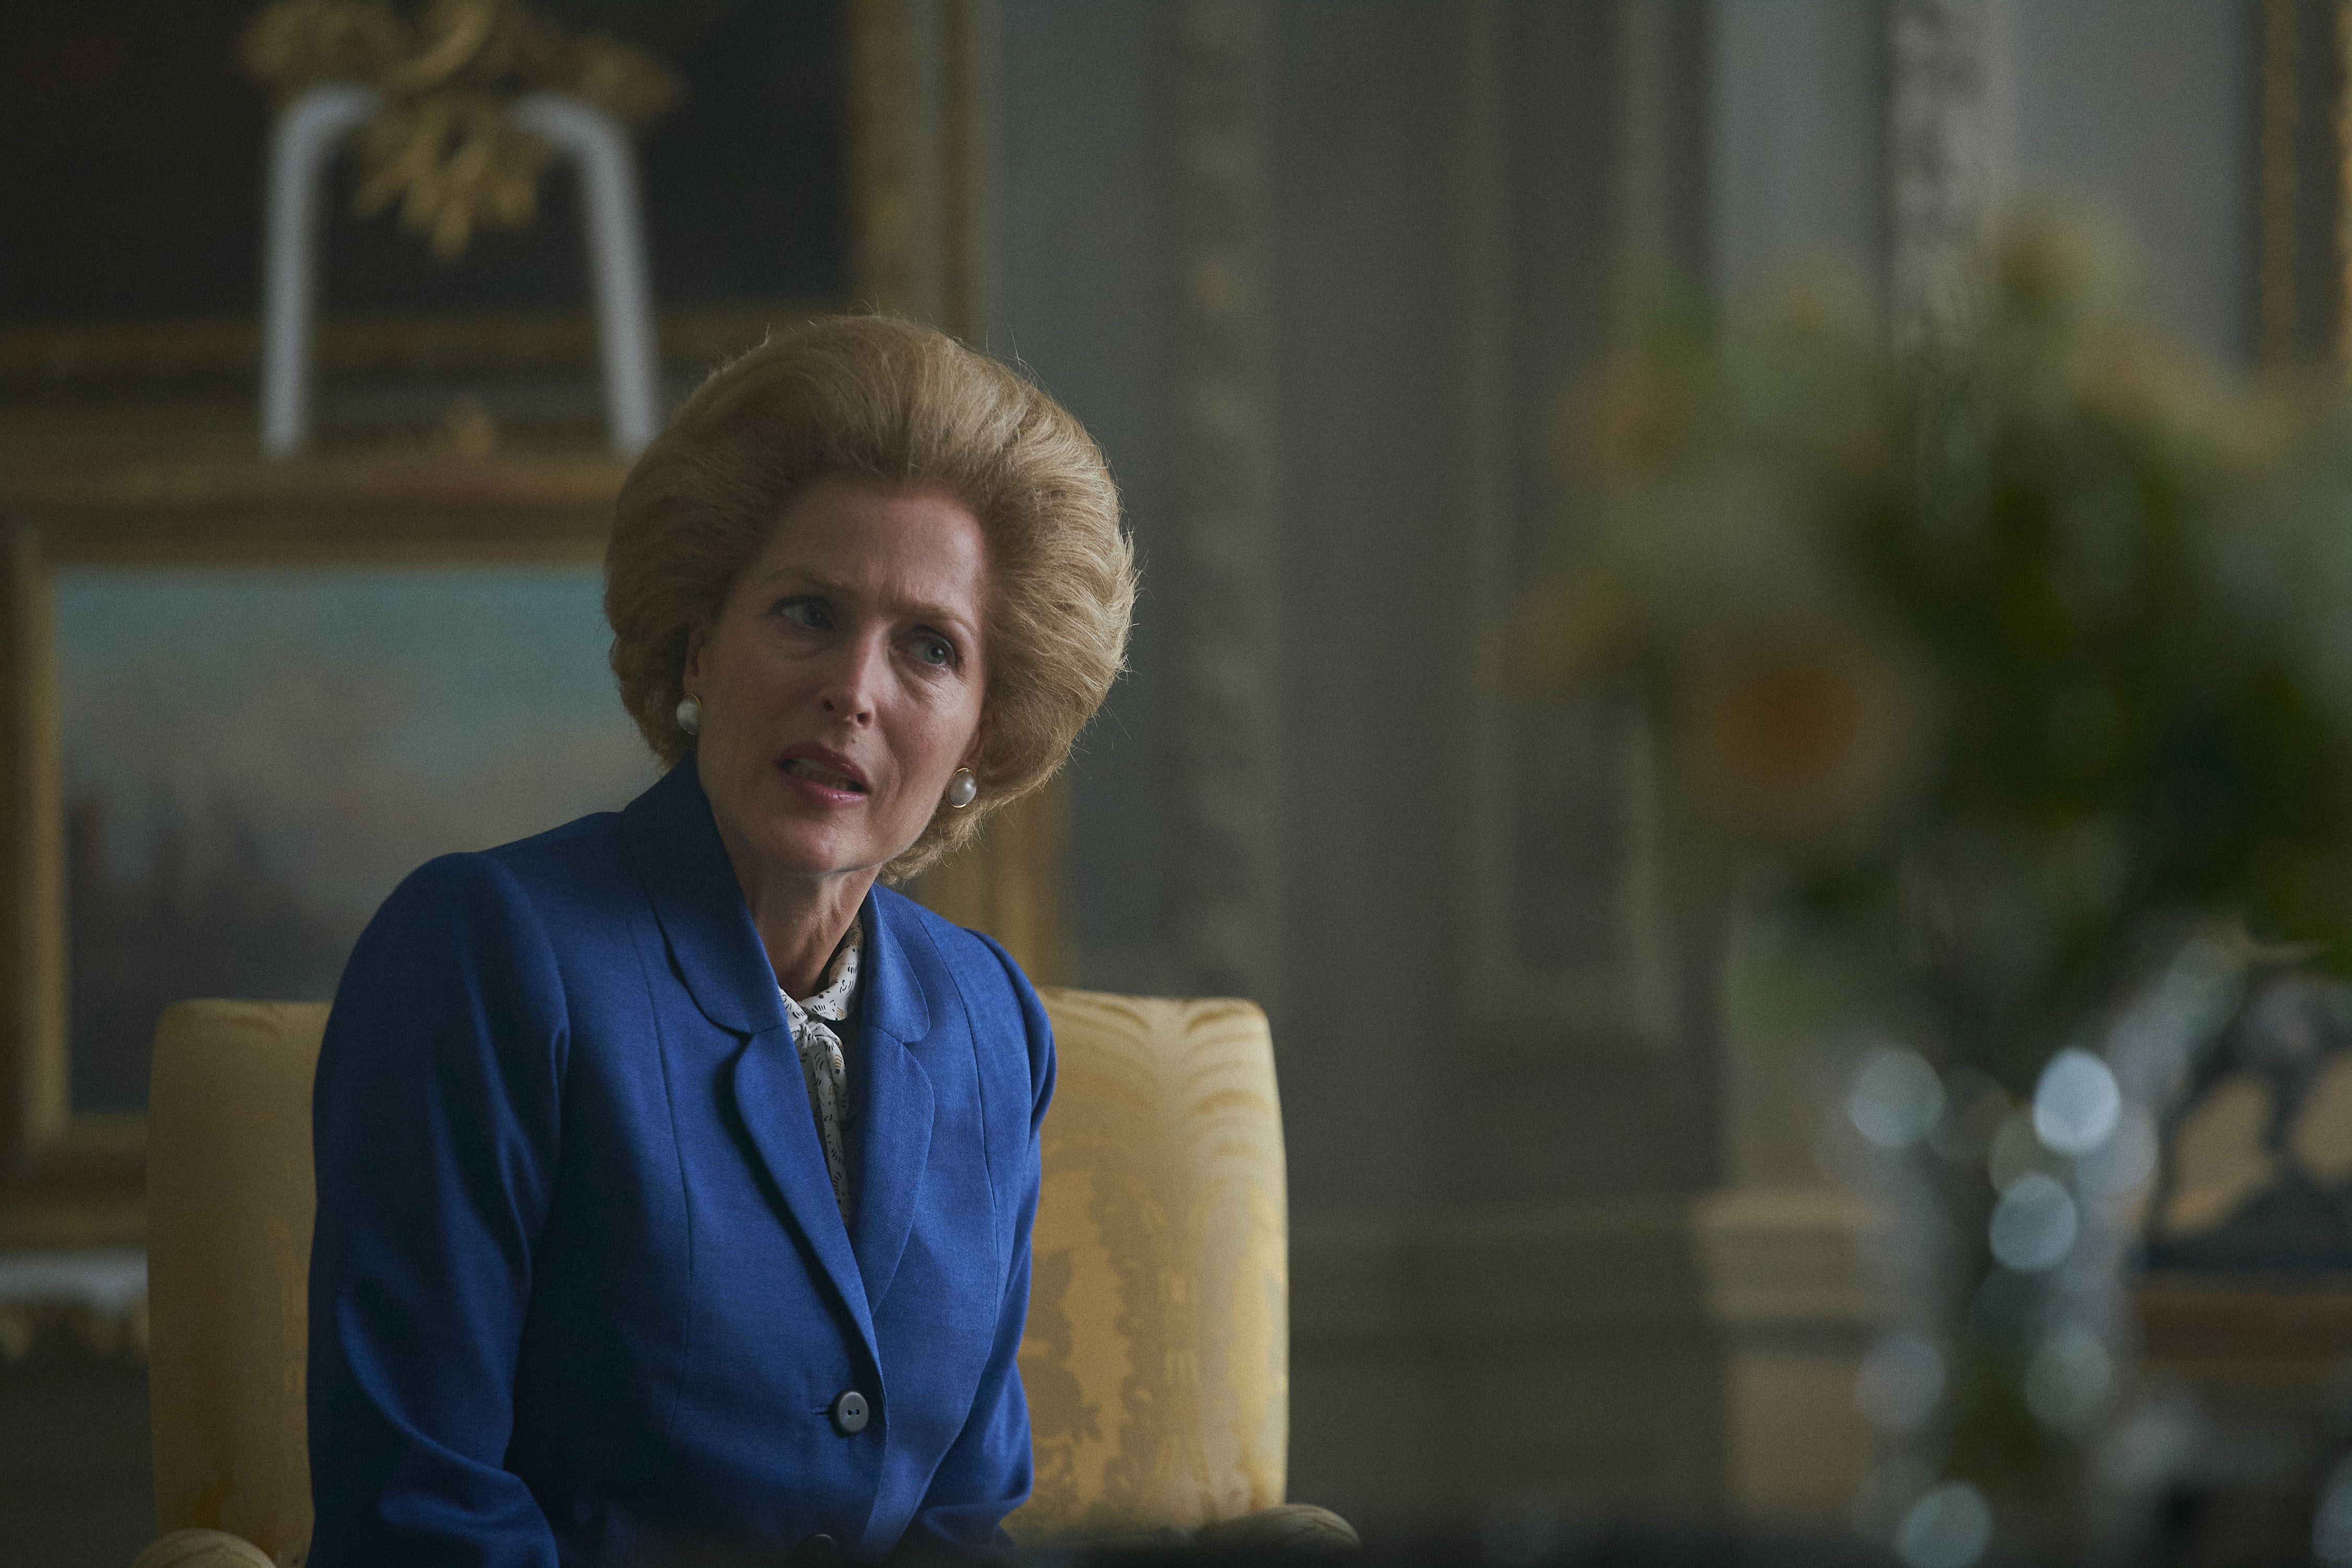 'The Crown' Trailer Sees Queen Elizabeth and Margaret Thatcher at Odds